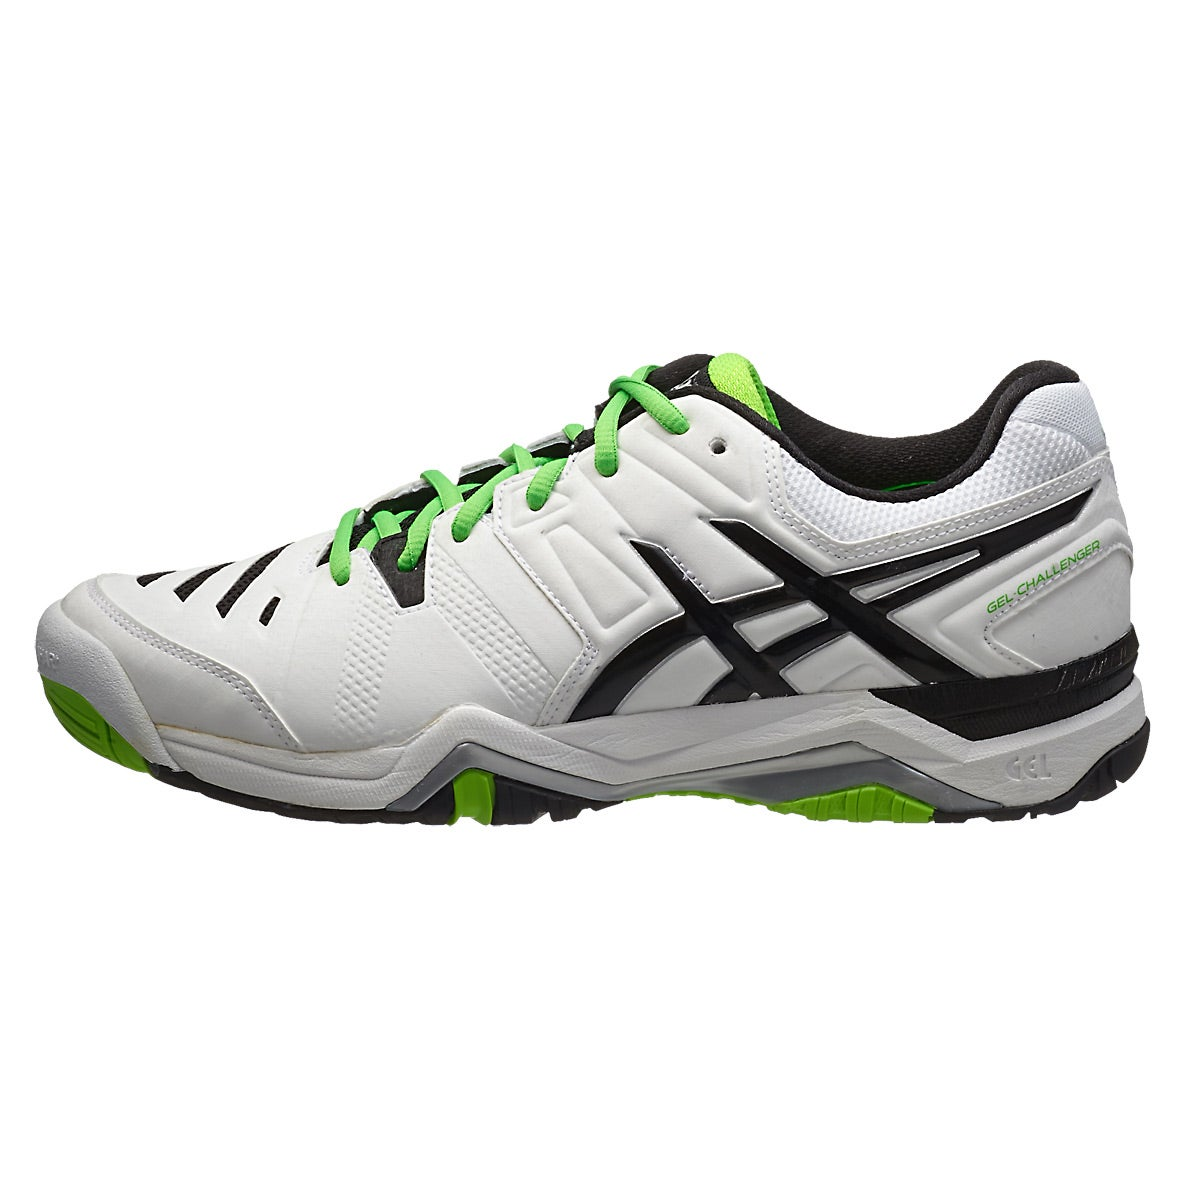 Green And Black Tennis Shoes